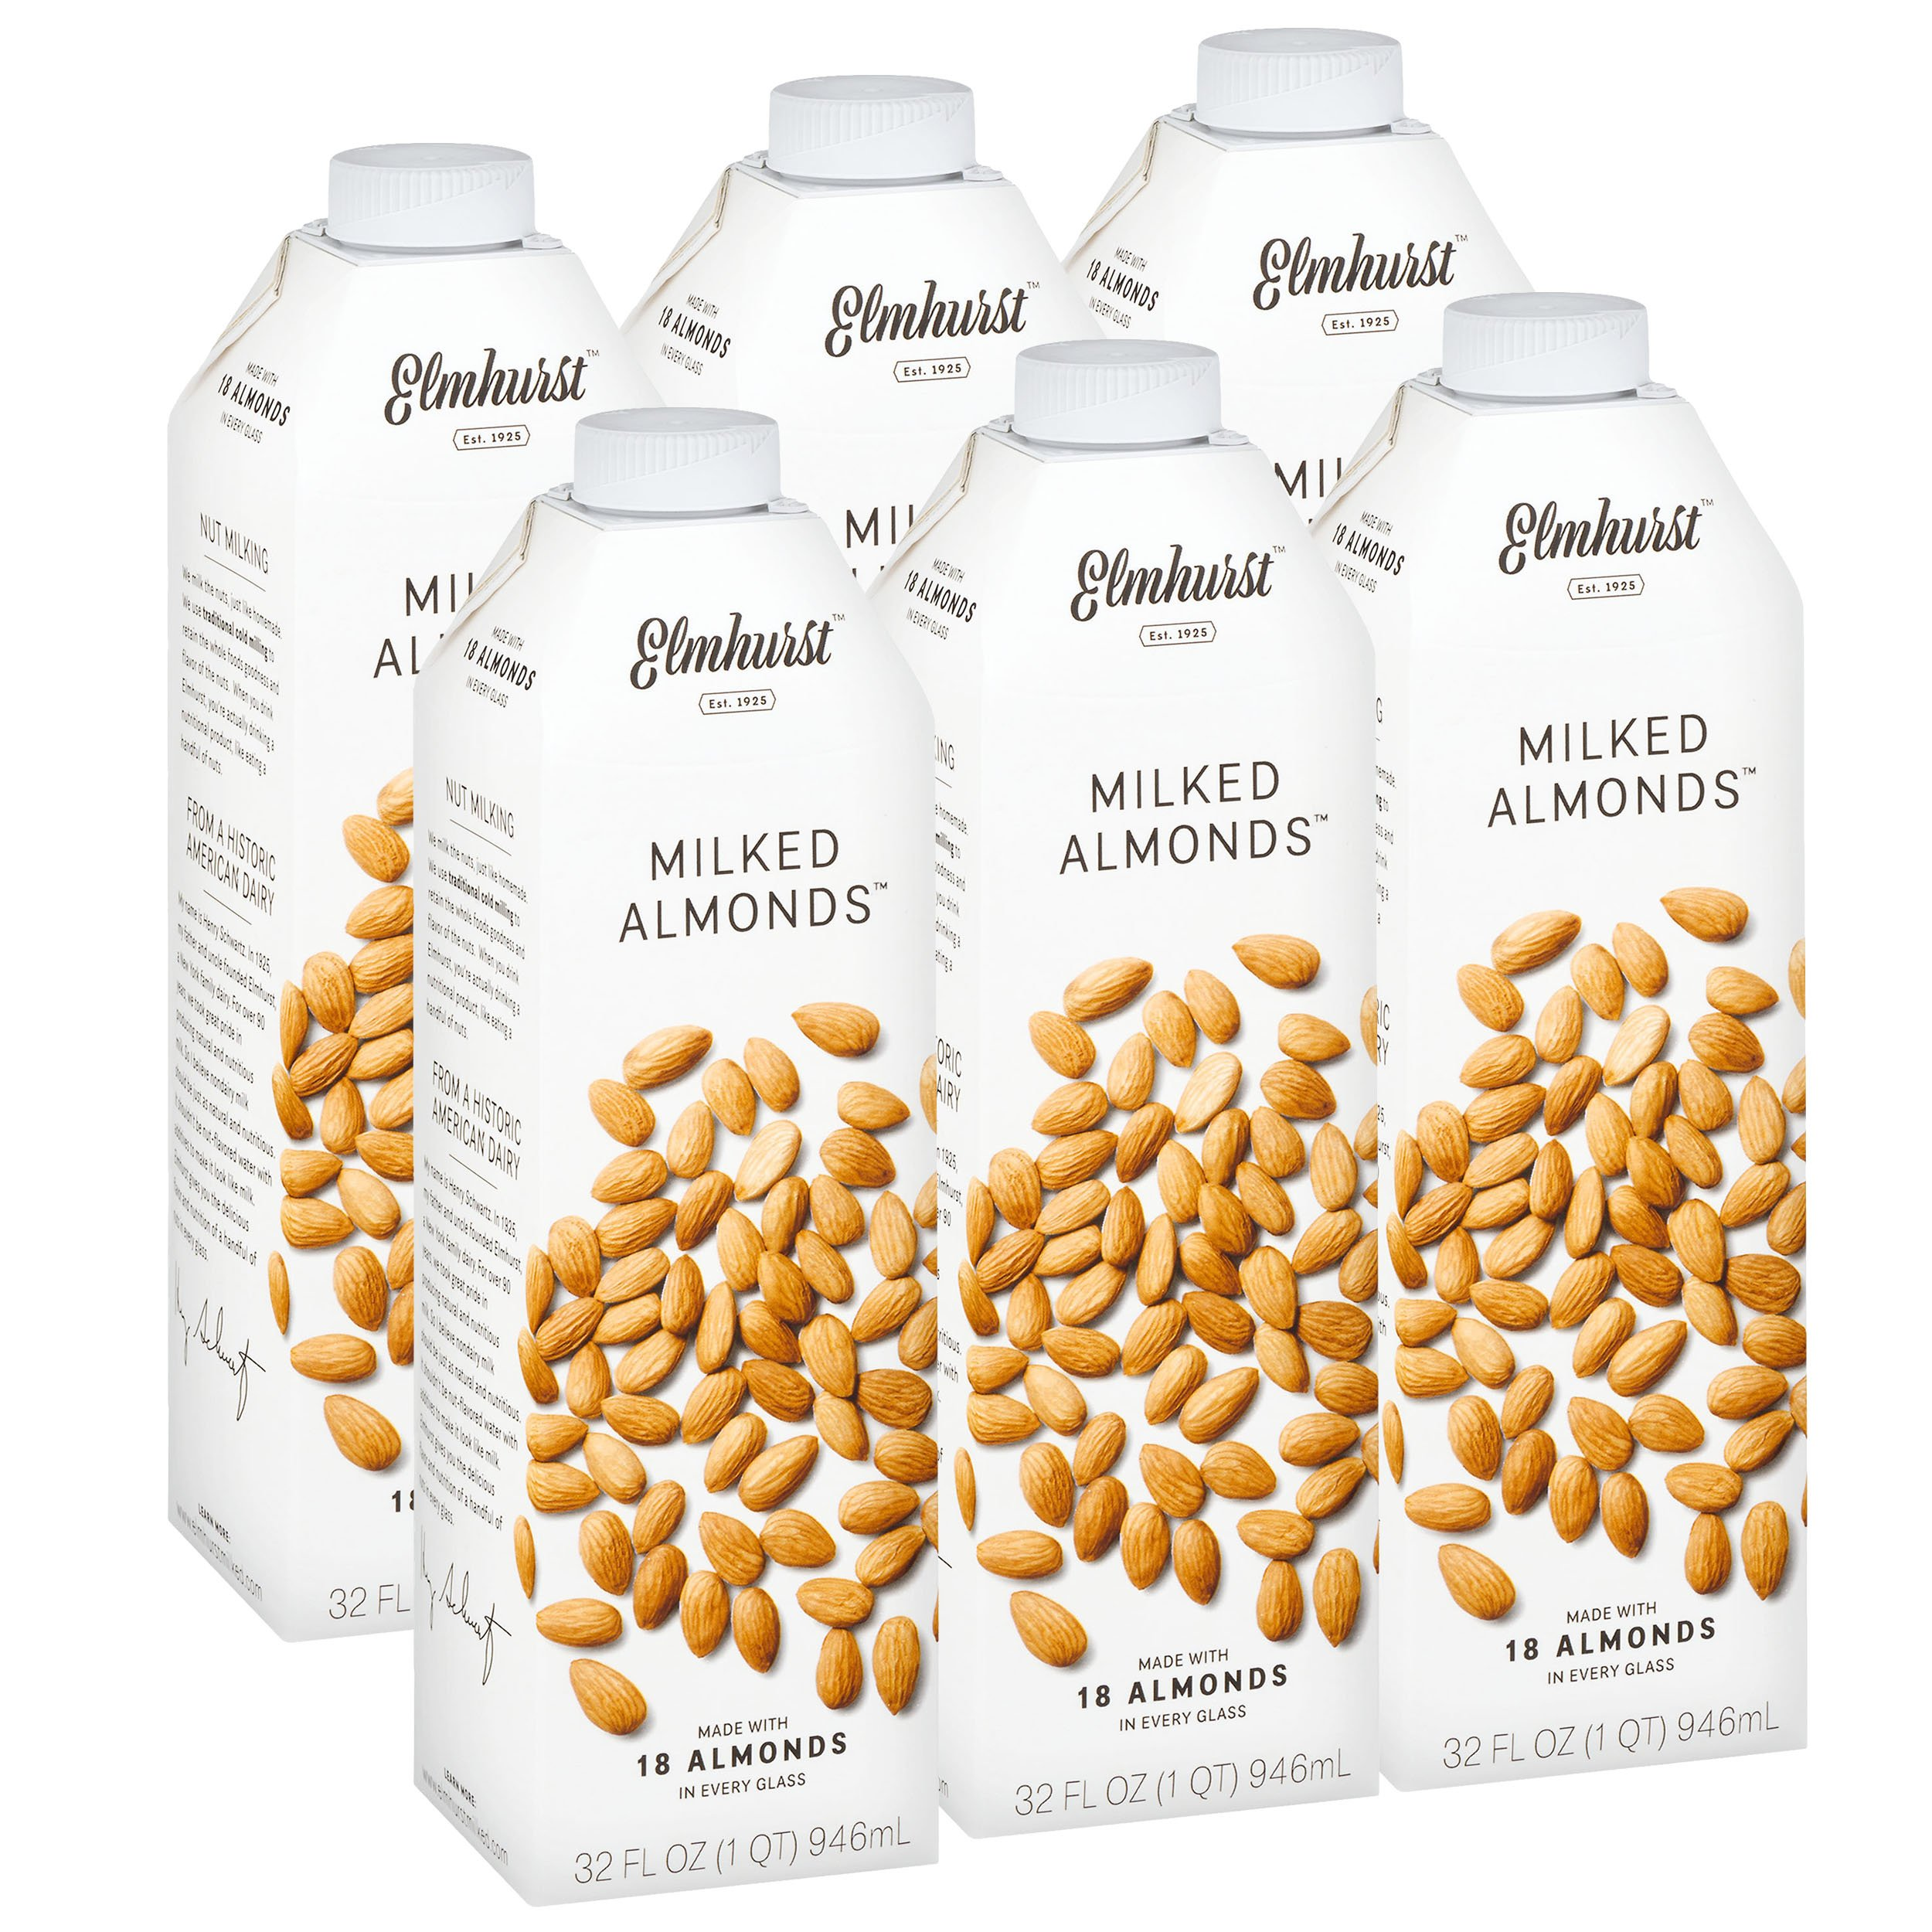 Elmhurst Milked - Almond Milk - 32 Fluid Ounces (Pack of 6) Only 5 Ingredients, 4X the Protein, Non Dairy, Keto Friendly, No Added Gums or Emulsifiers, Vegan